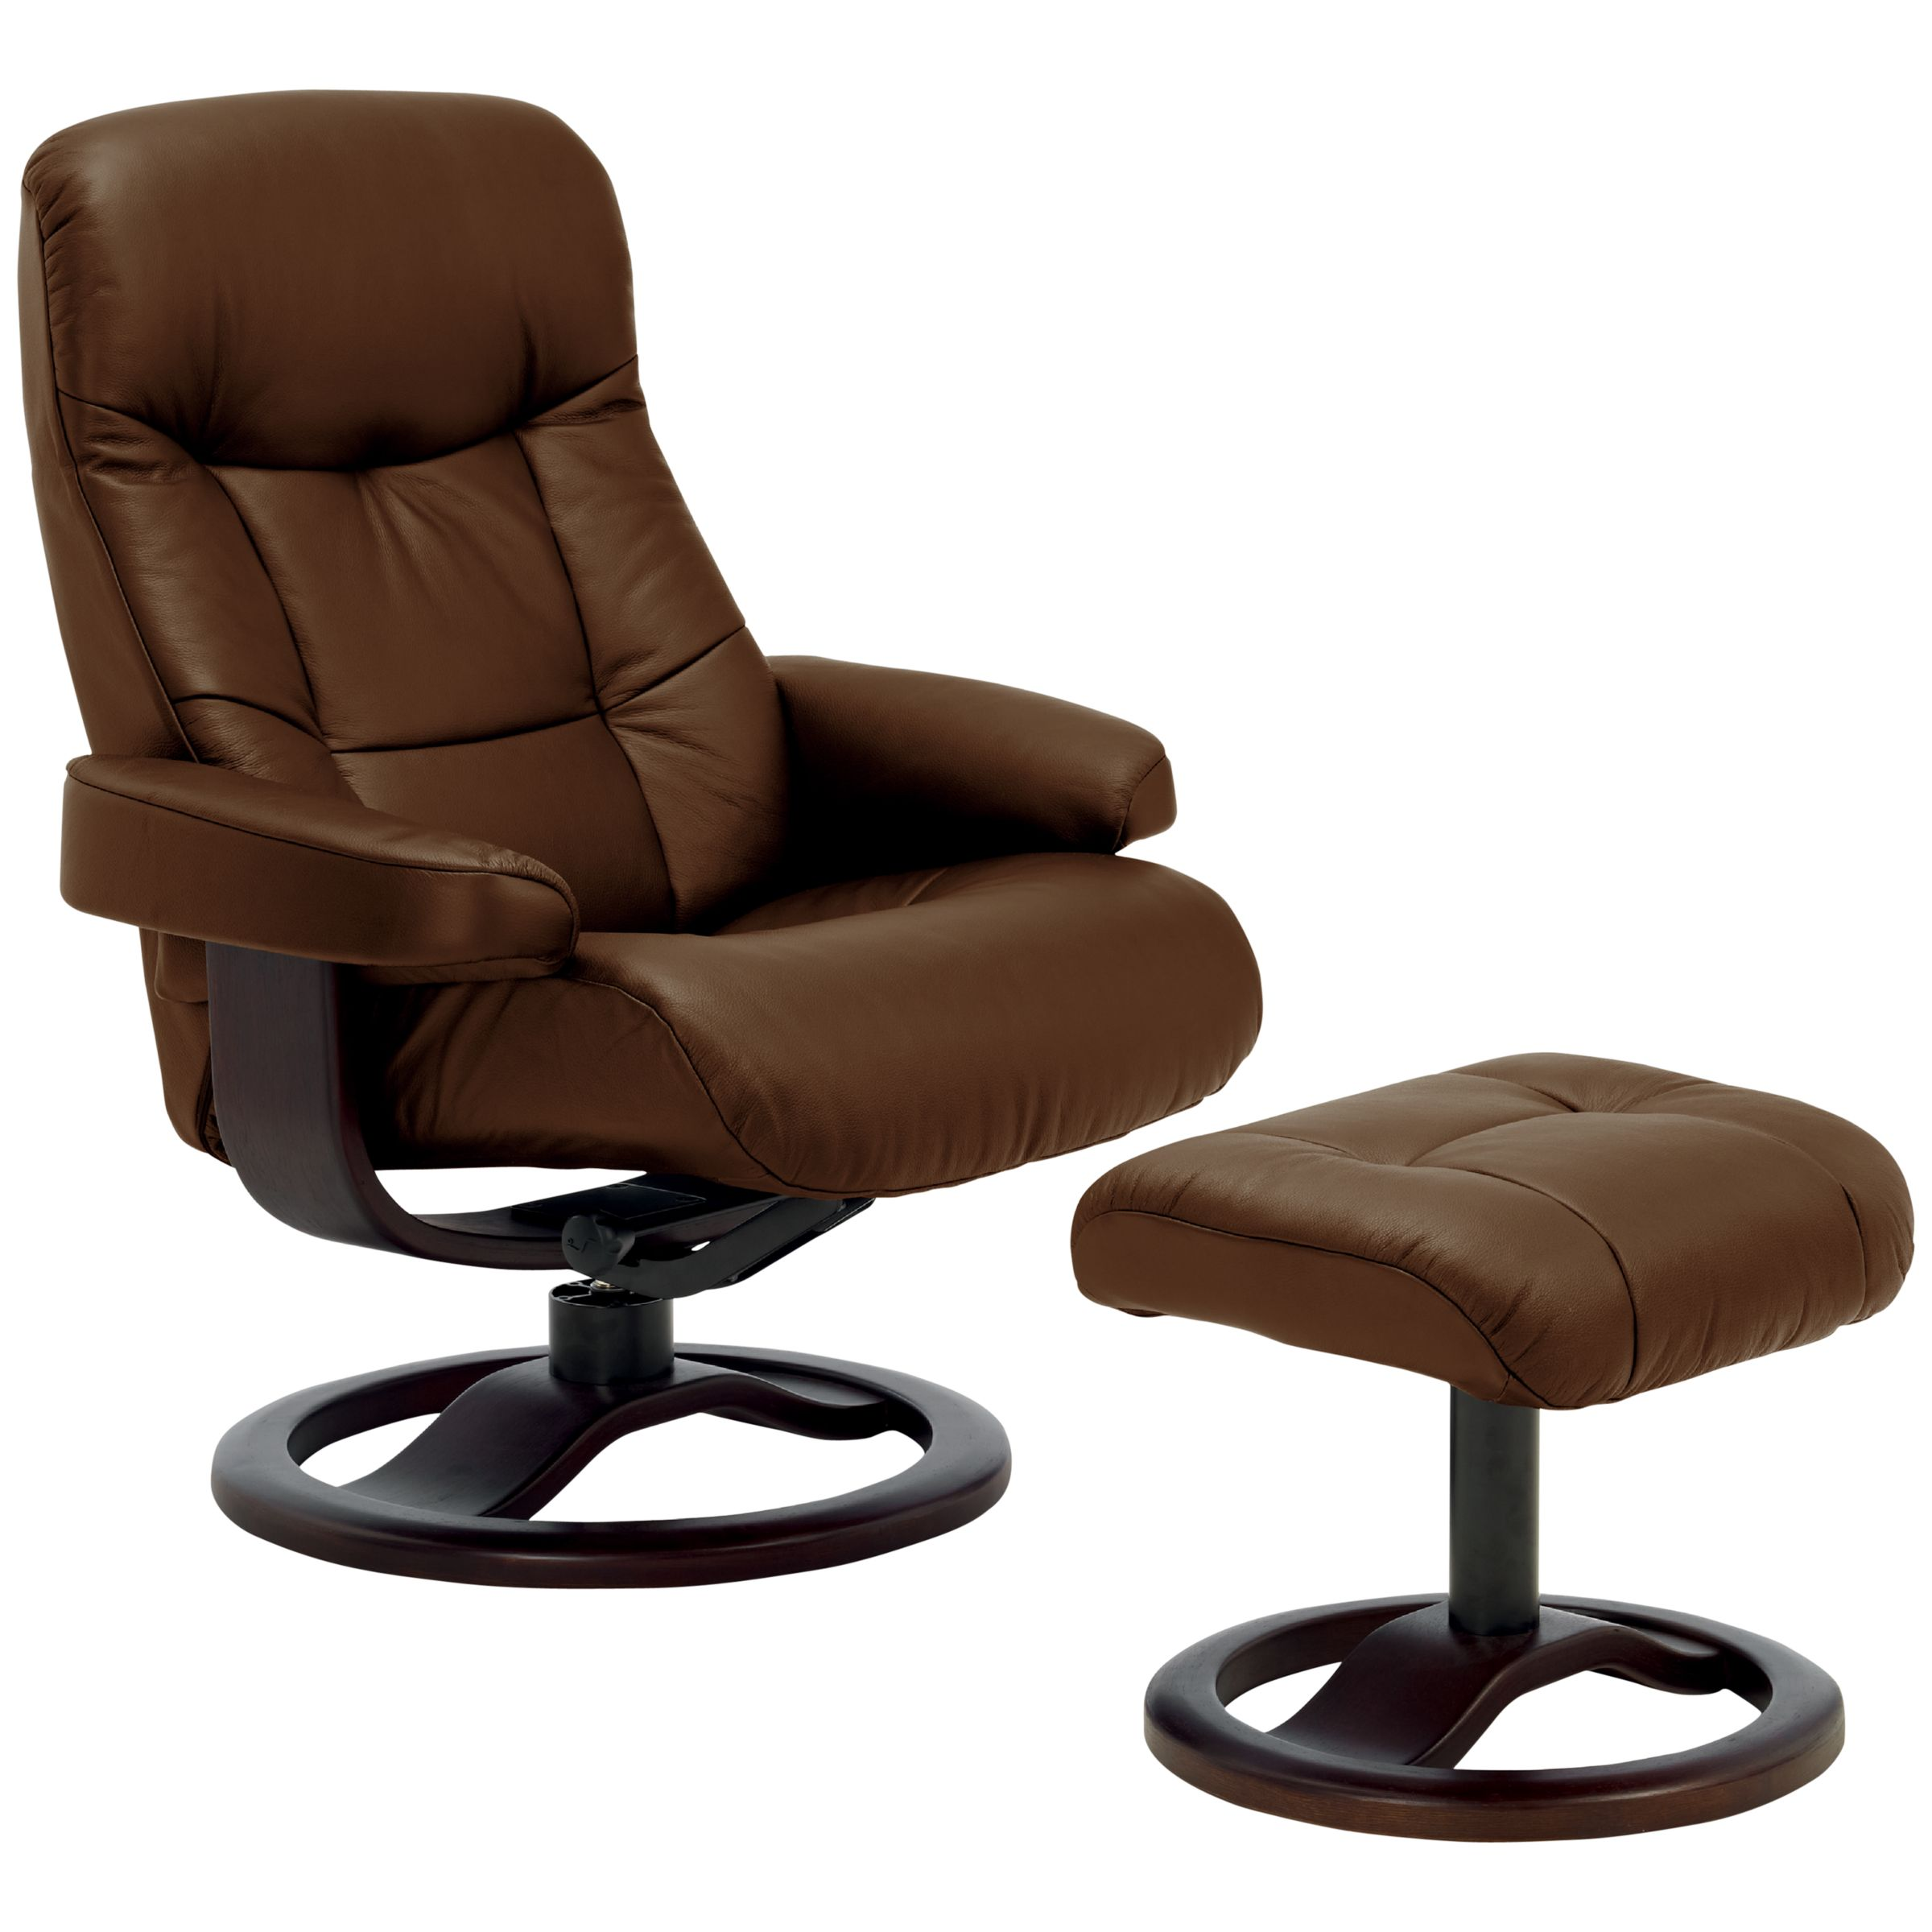 John Lewis Oslo Swivelling Recliner Armchair And Stool, Espresso Base, Walnut